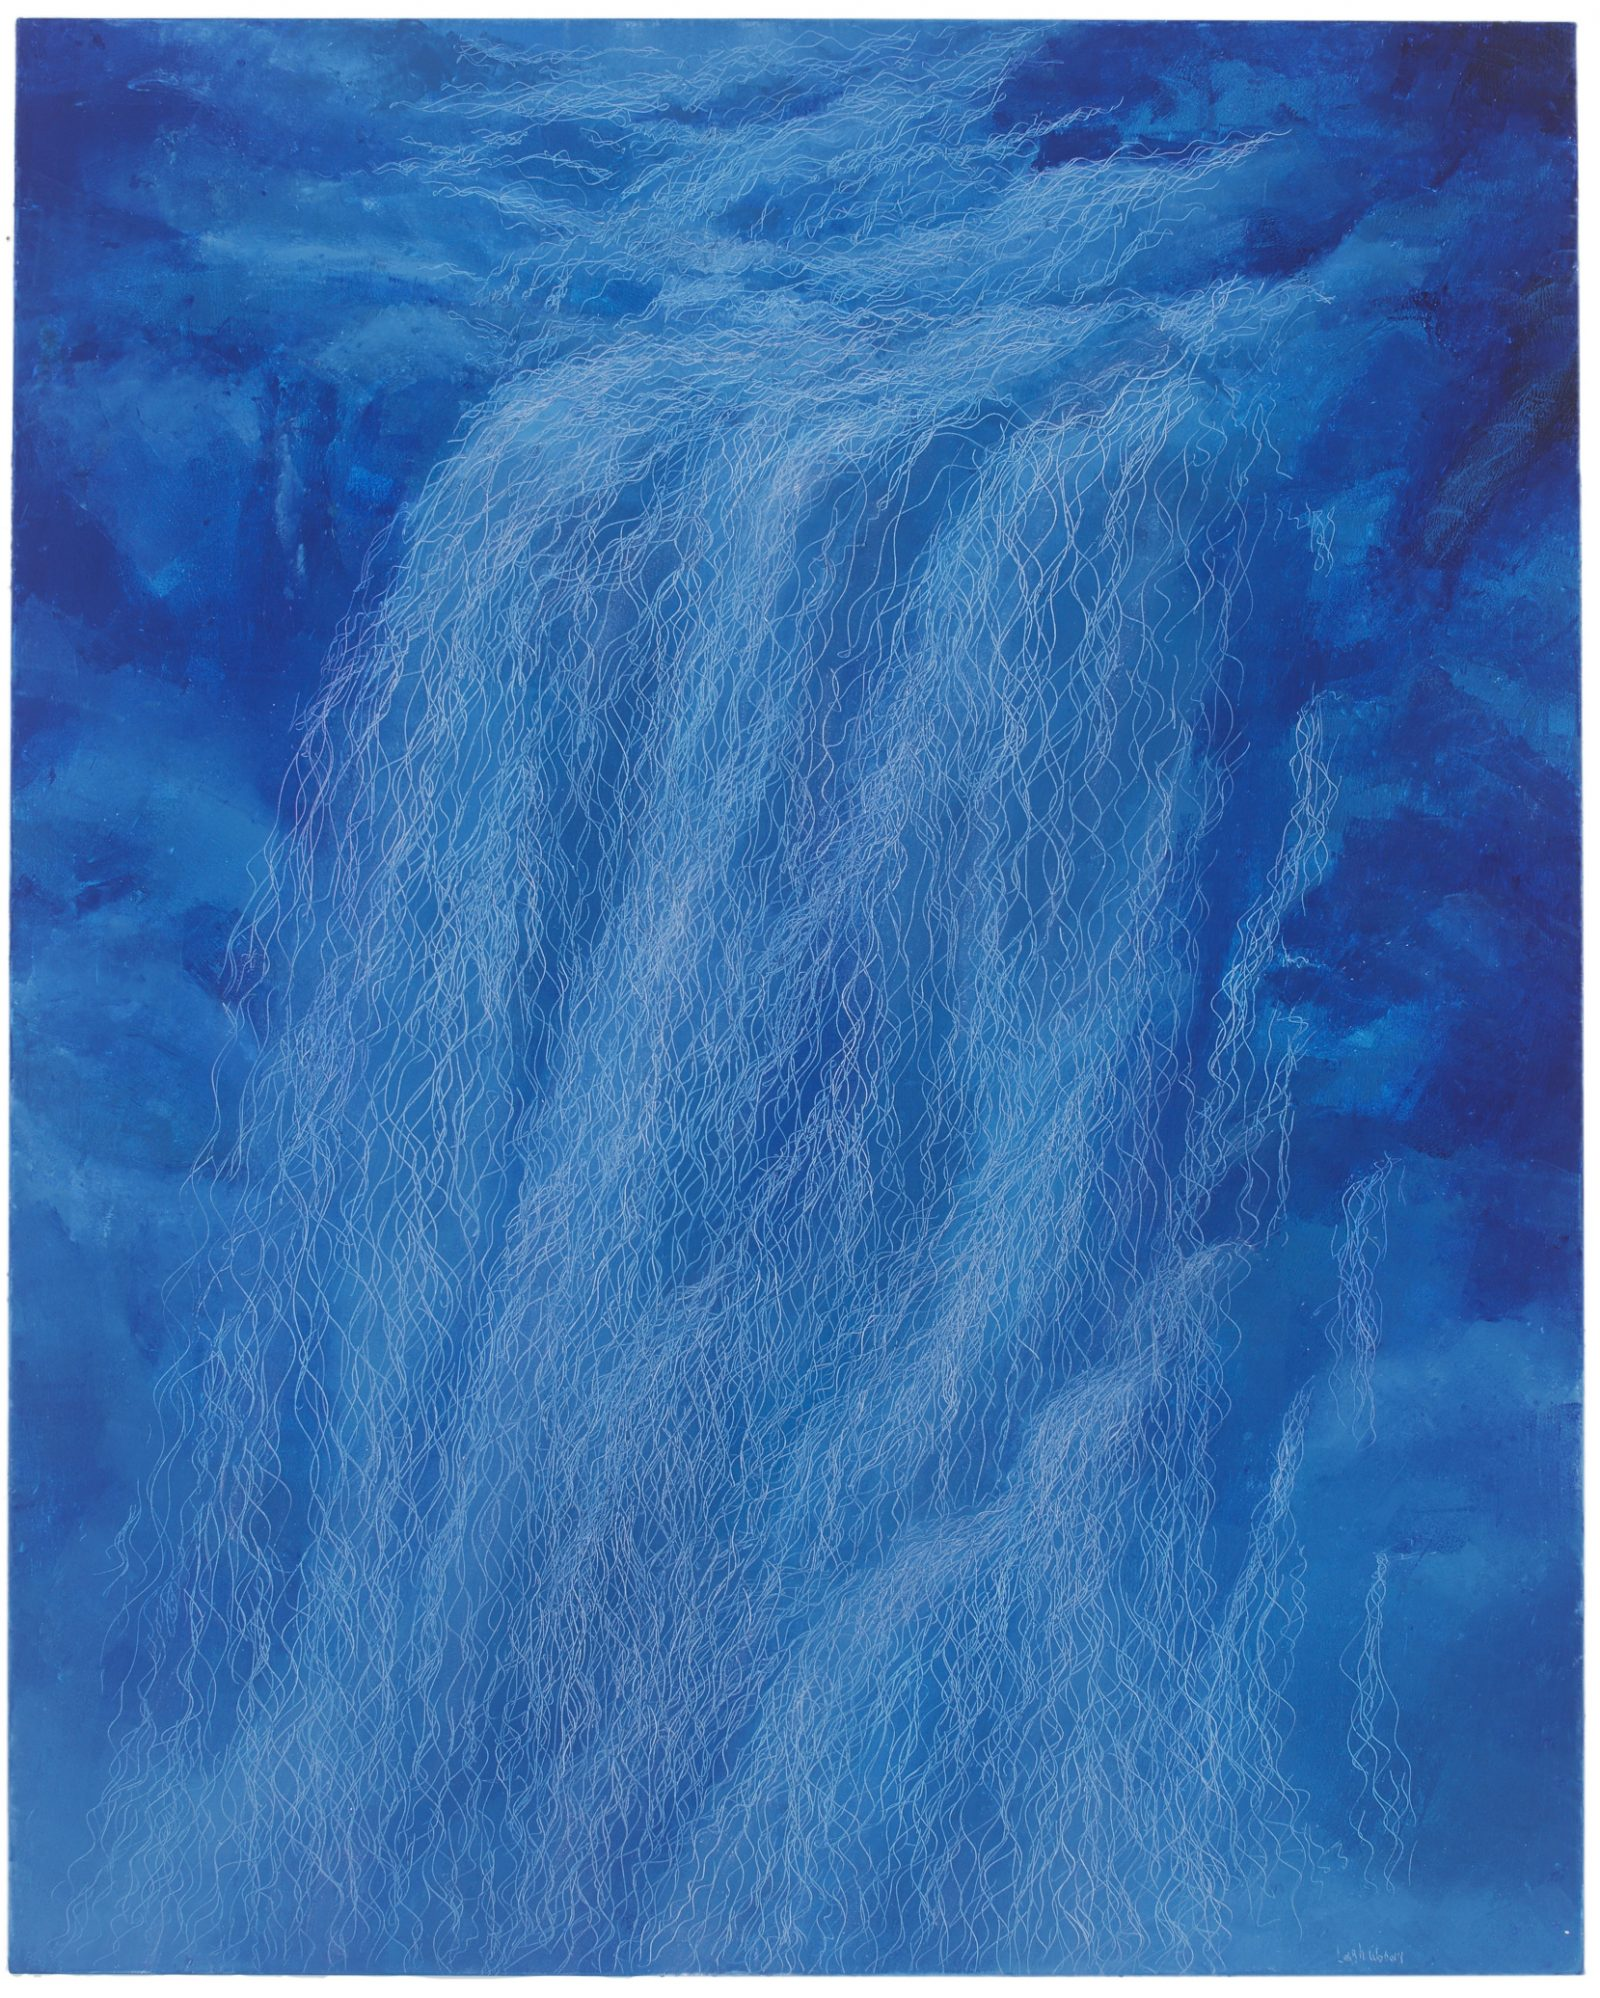 瀑布V, Waterfall V, 162 x 130 cm, oil on linen, 2017